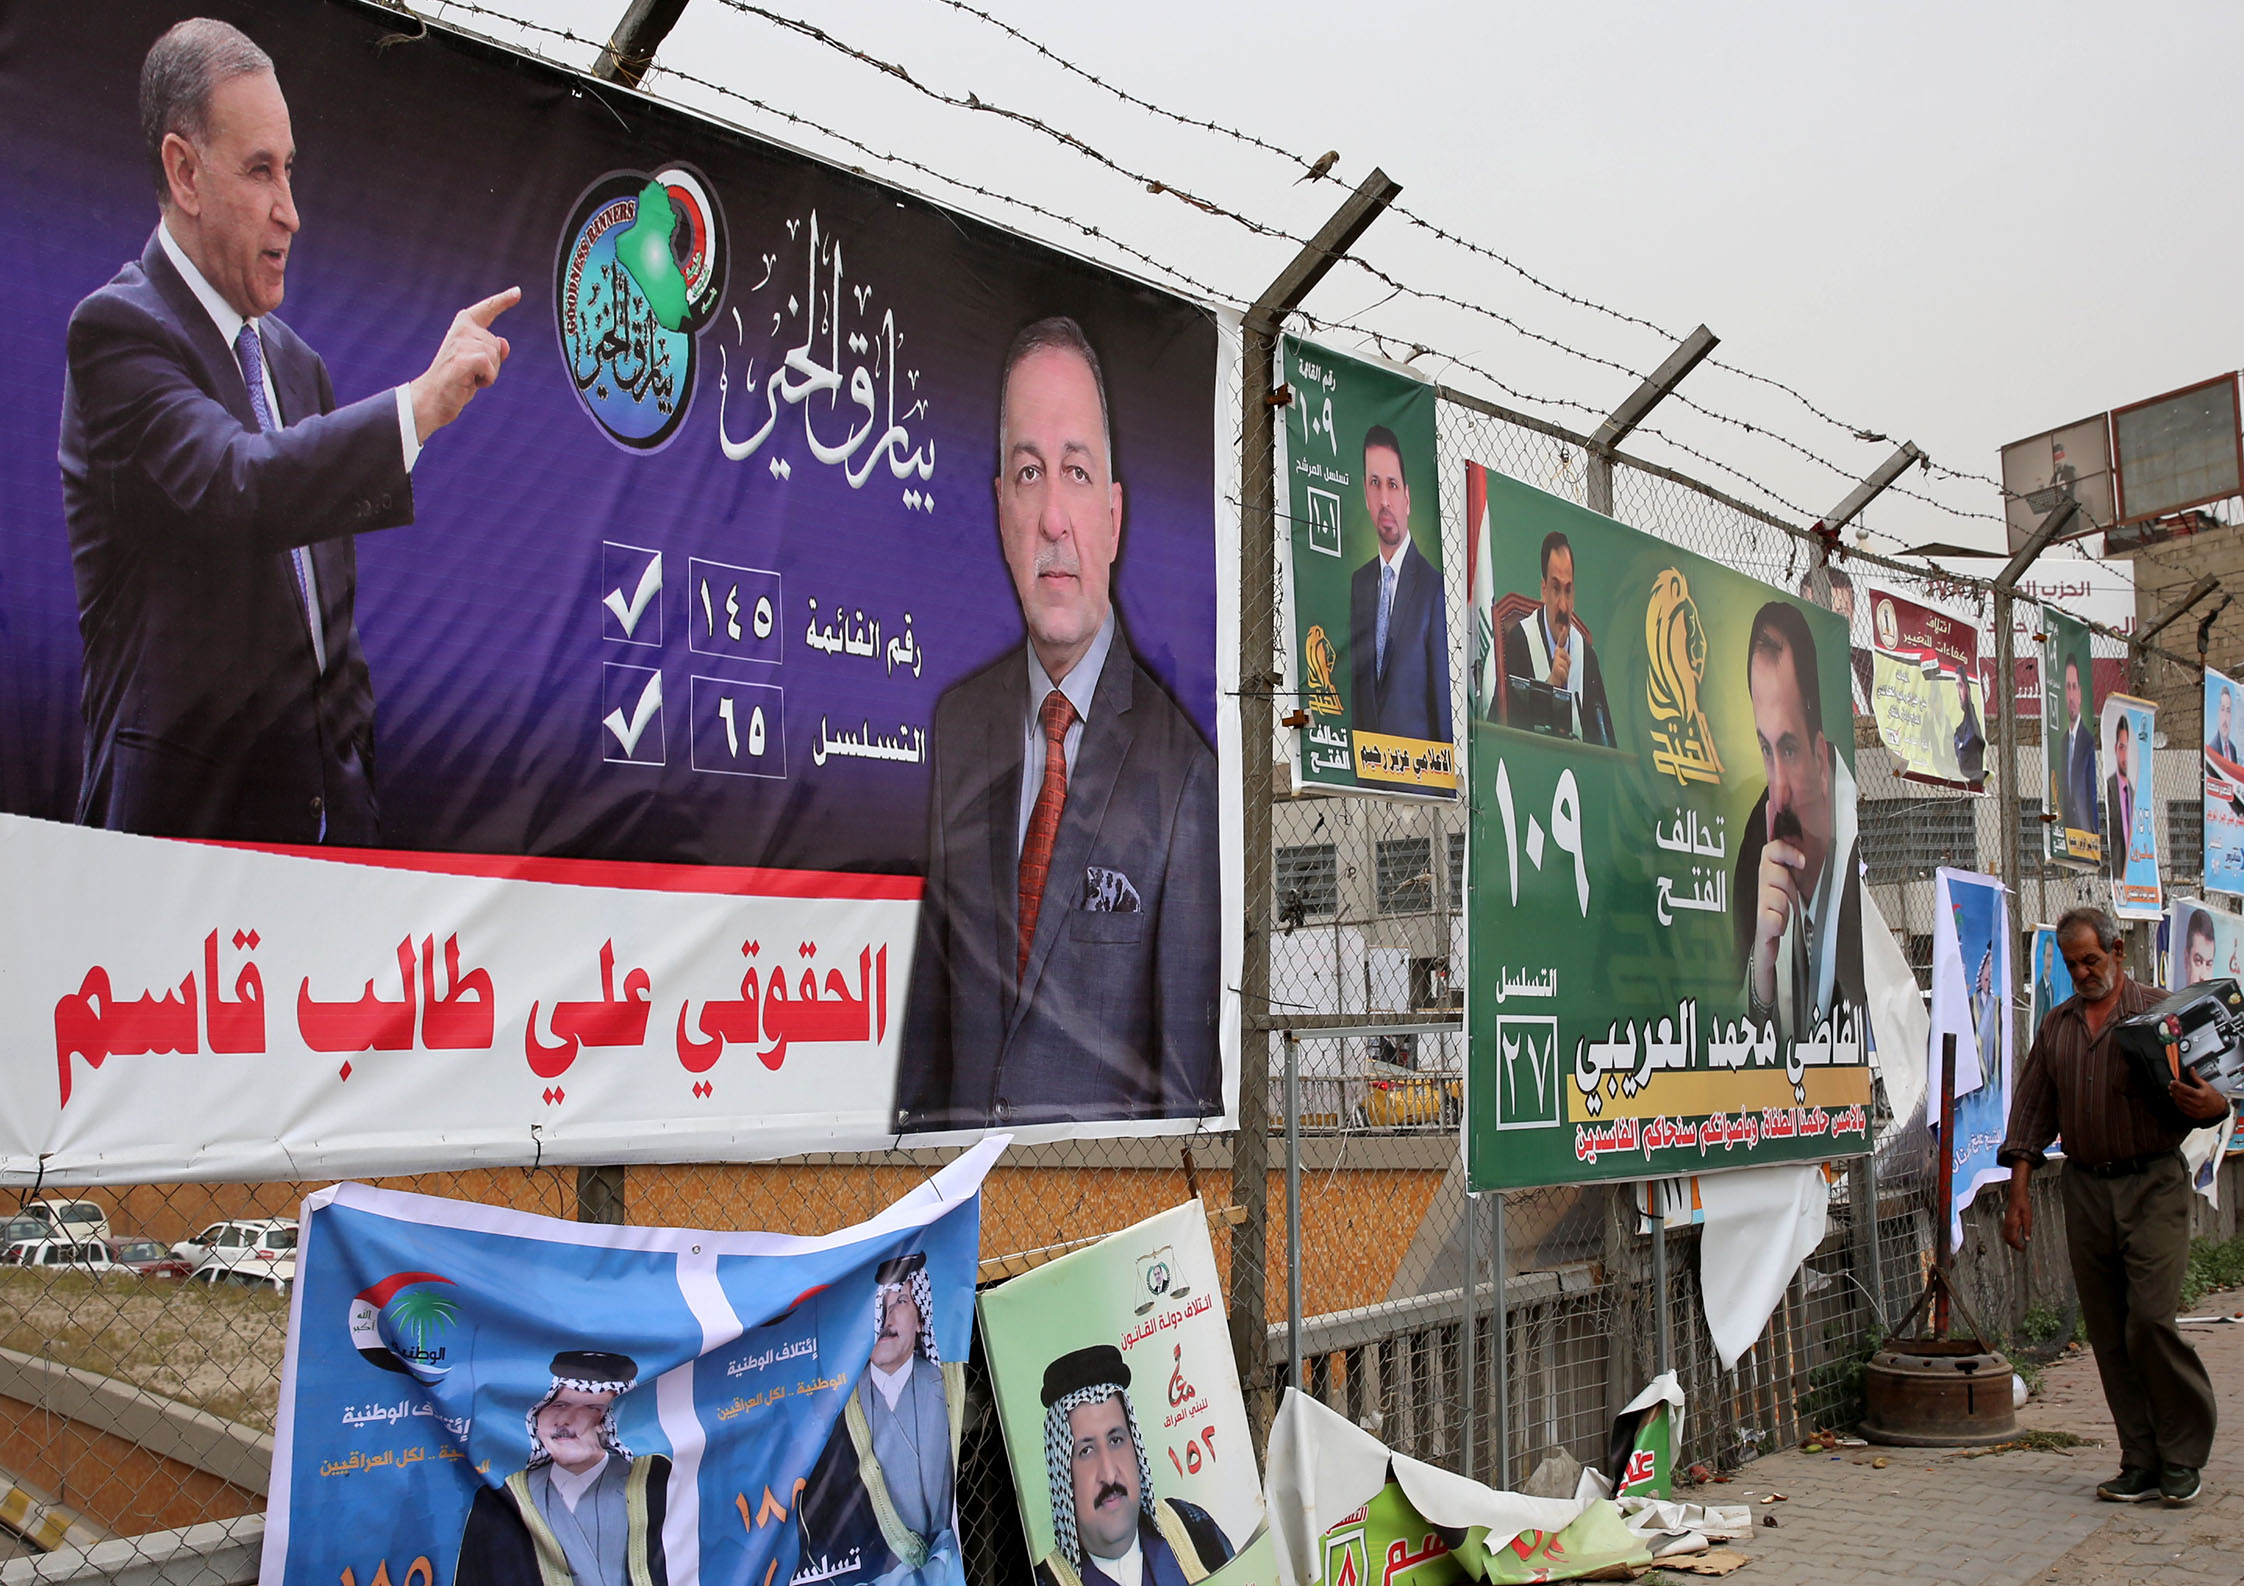 Posters of candidates in Iraq's upcoming parliamentary elections are seen with Arabic slogans in the streets of Baghdad on May 8, 2018.